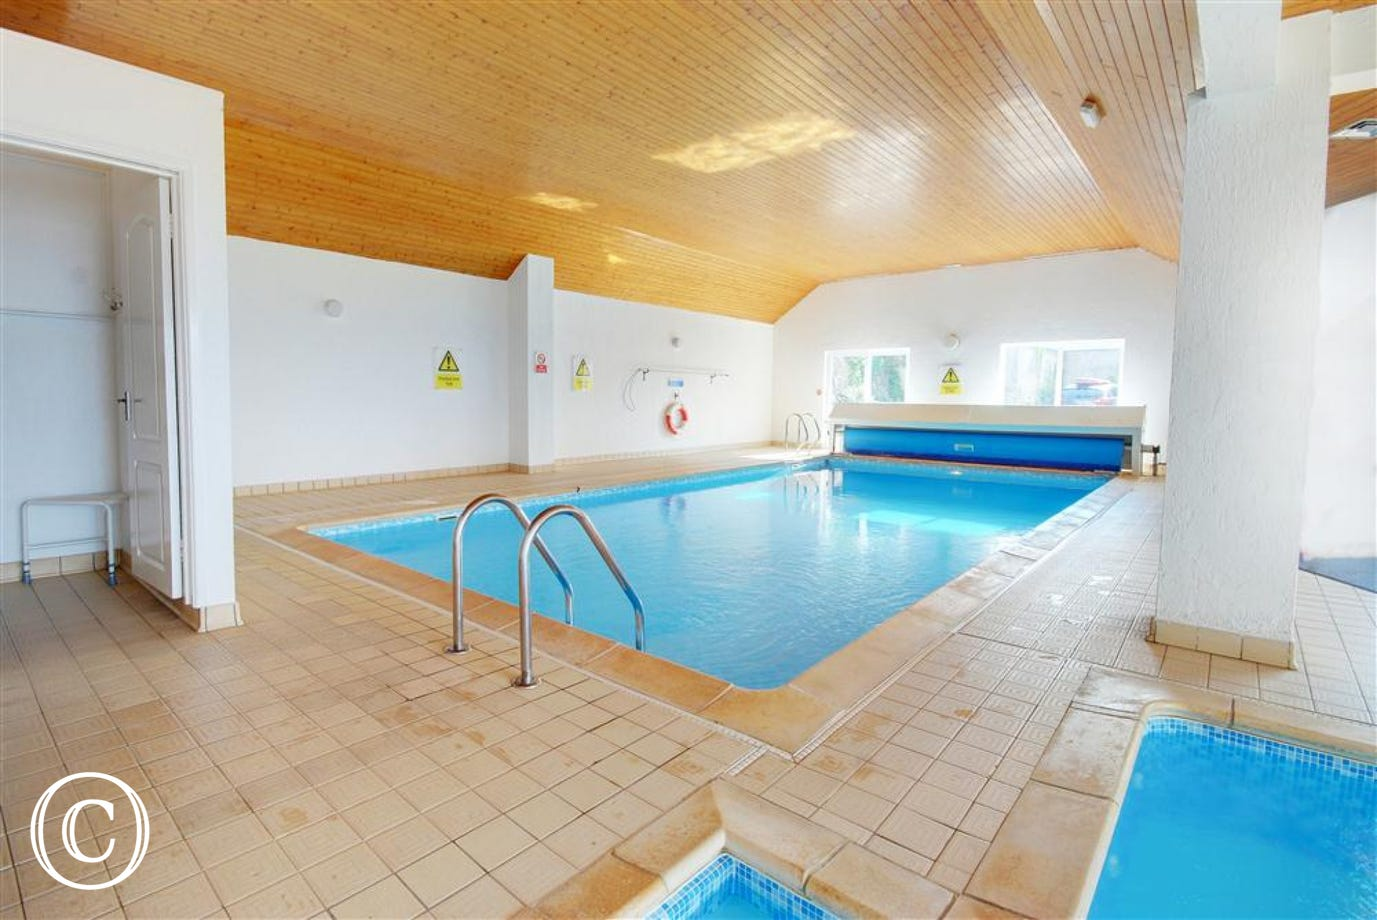 The apartment benefits from a large heated swimming pool and a smaller pool for the children.